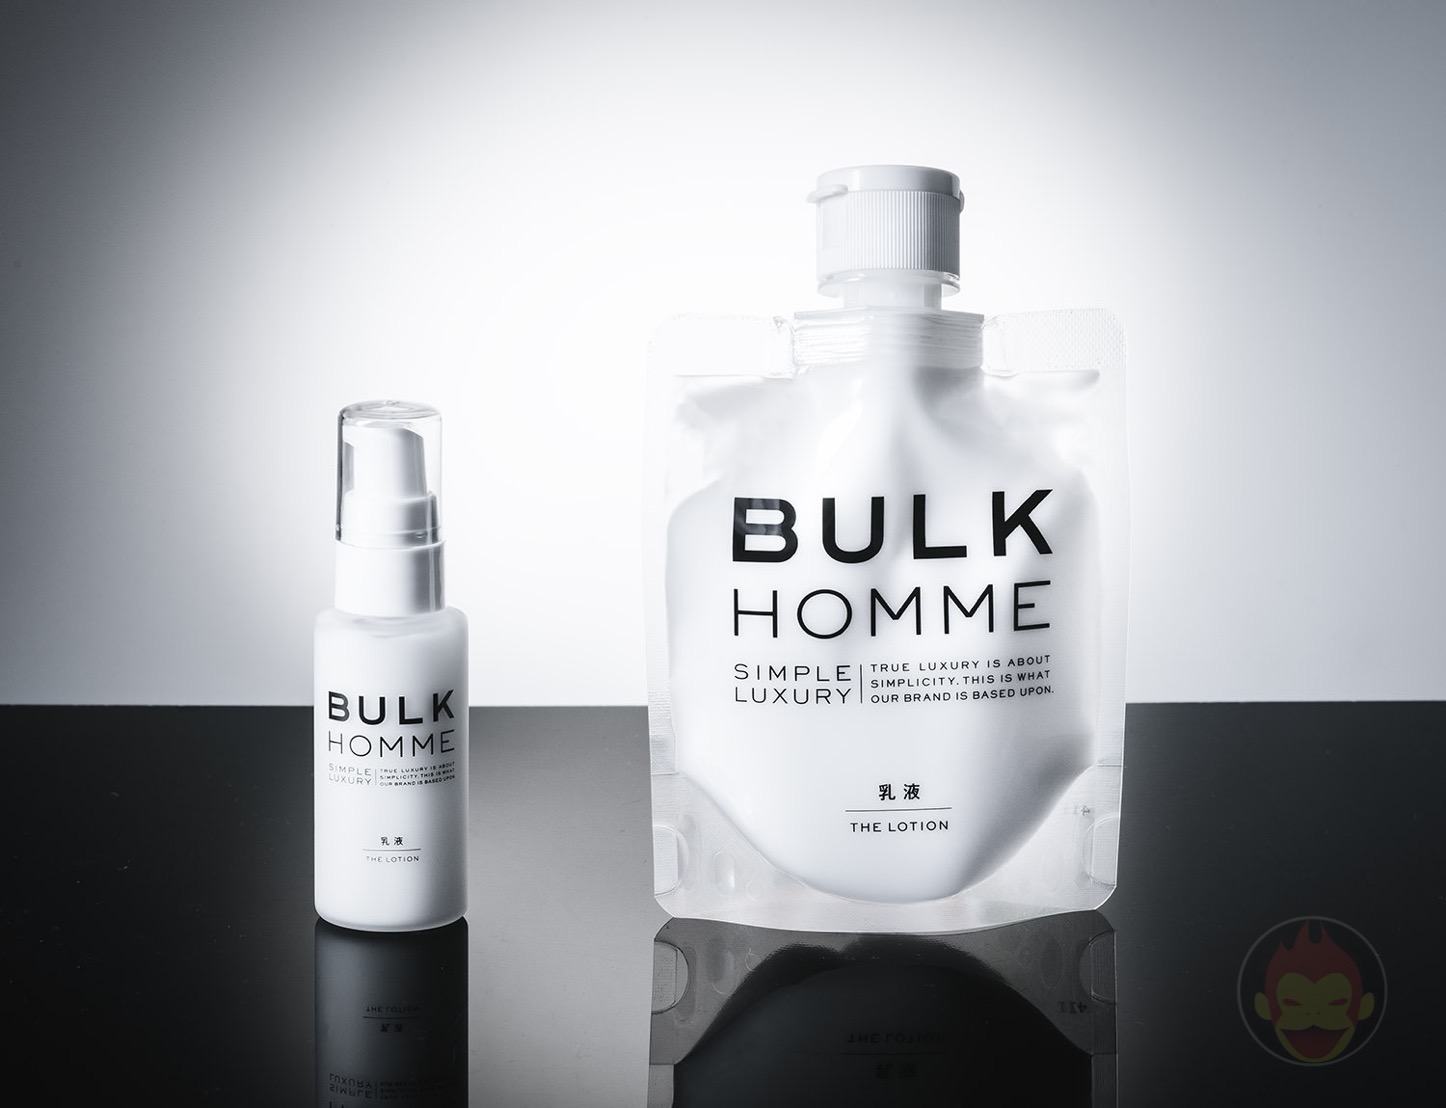 BULK HOMME 乳液「THE LOTION」